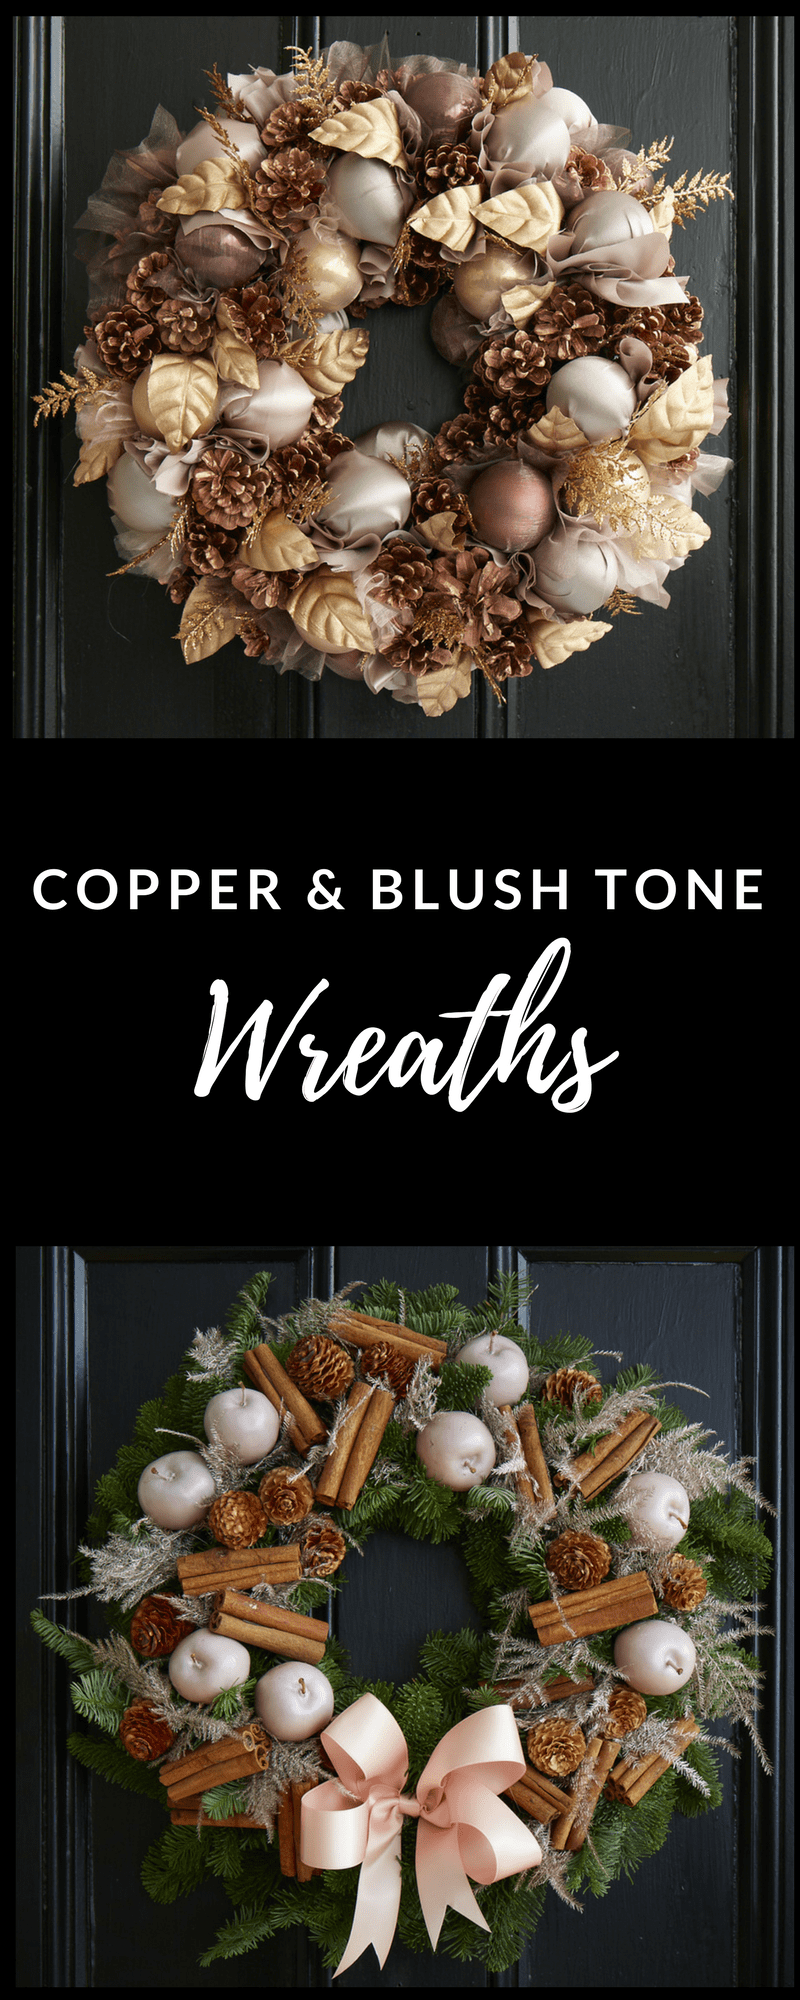 Copper and blush tone Christmas wreaths Jane Packer